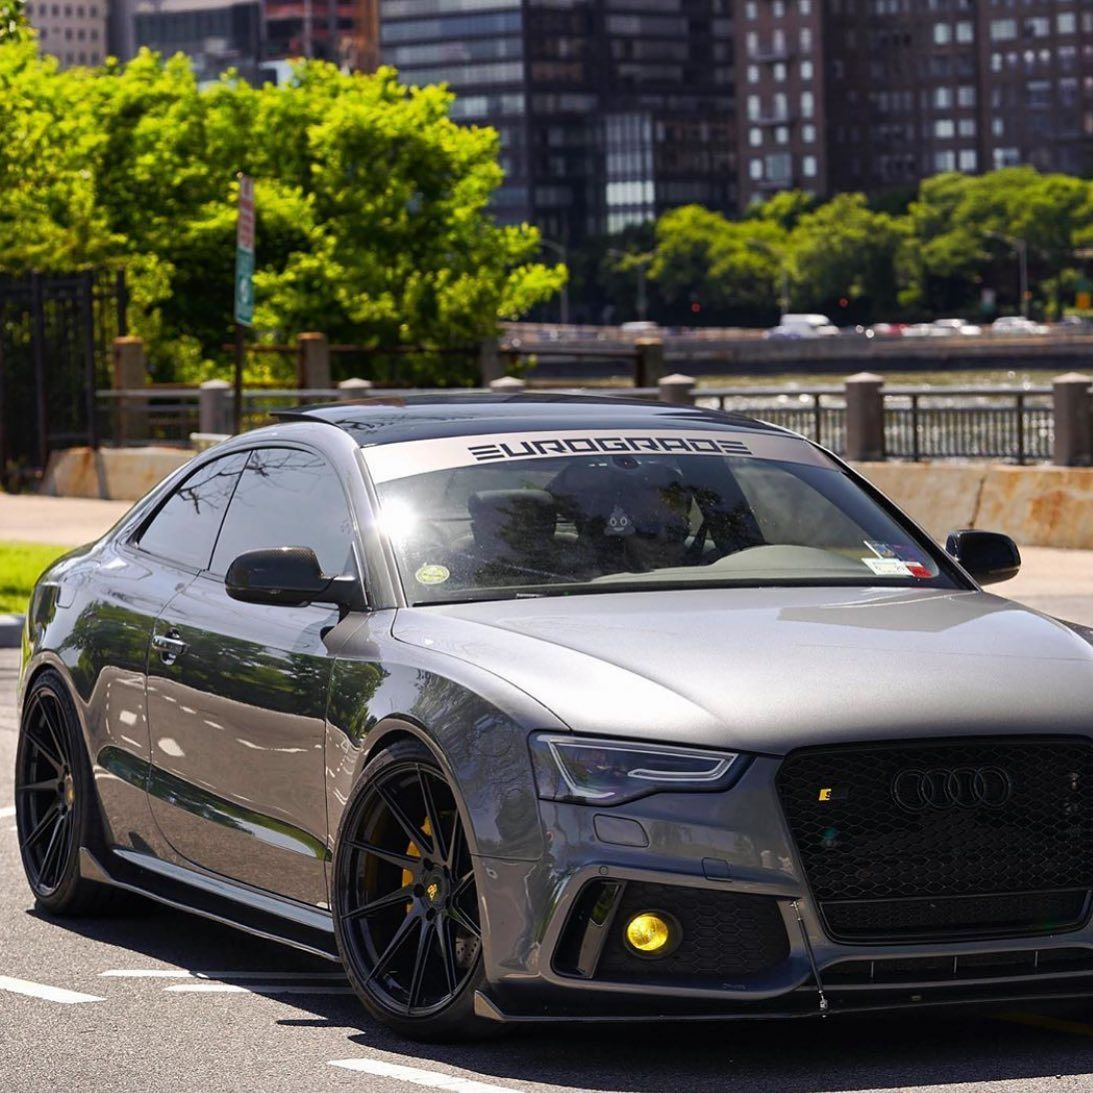 Caractere Front Bumper For Cars With Parking Sensors Headlight Washers And Foglights Fits Audi A5 B8 5 Bk Motorsport Audi S5 Audi Audi A5